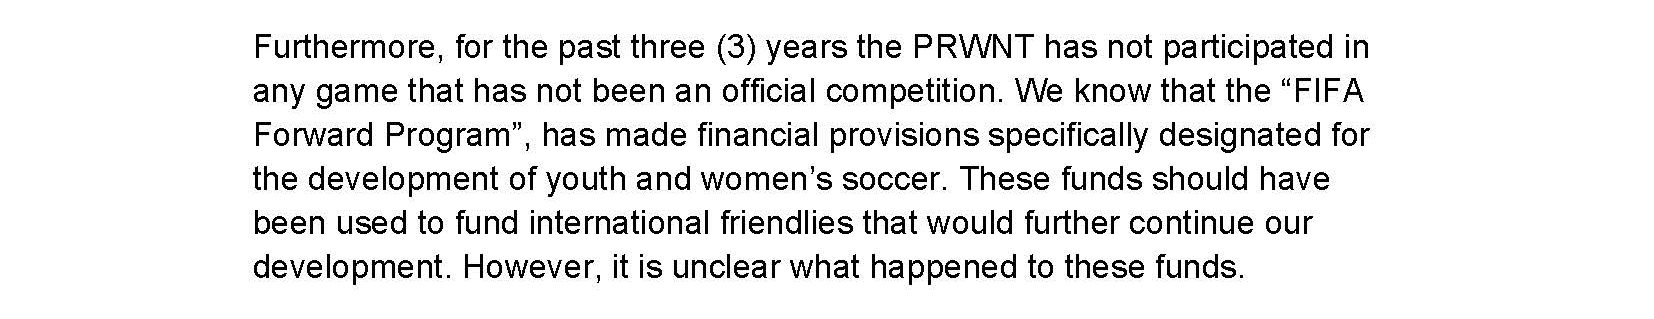 Excerpt from the letter the members of the Puerto Rico National Team sent to the federation.